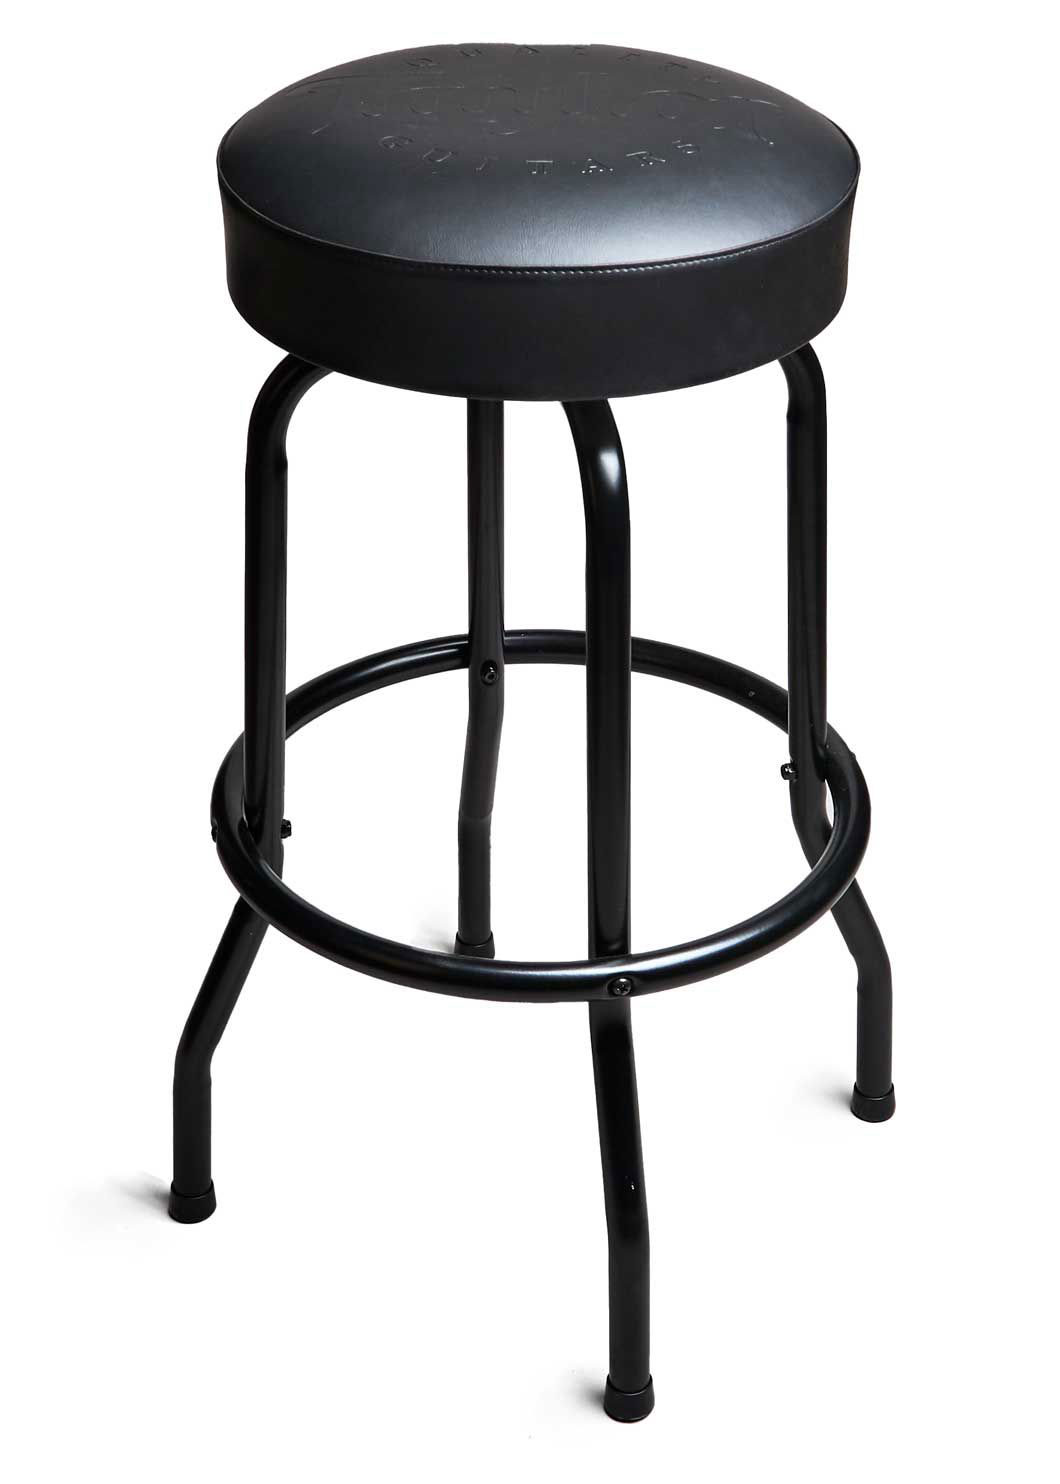 ACCESSORIES TAYLOR DELUXE BAR STOOL, BLACK 30